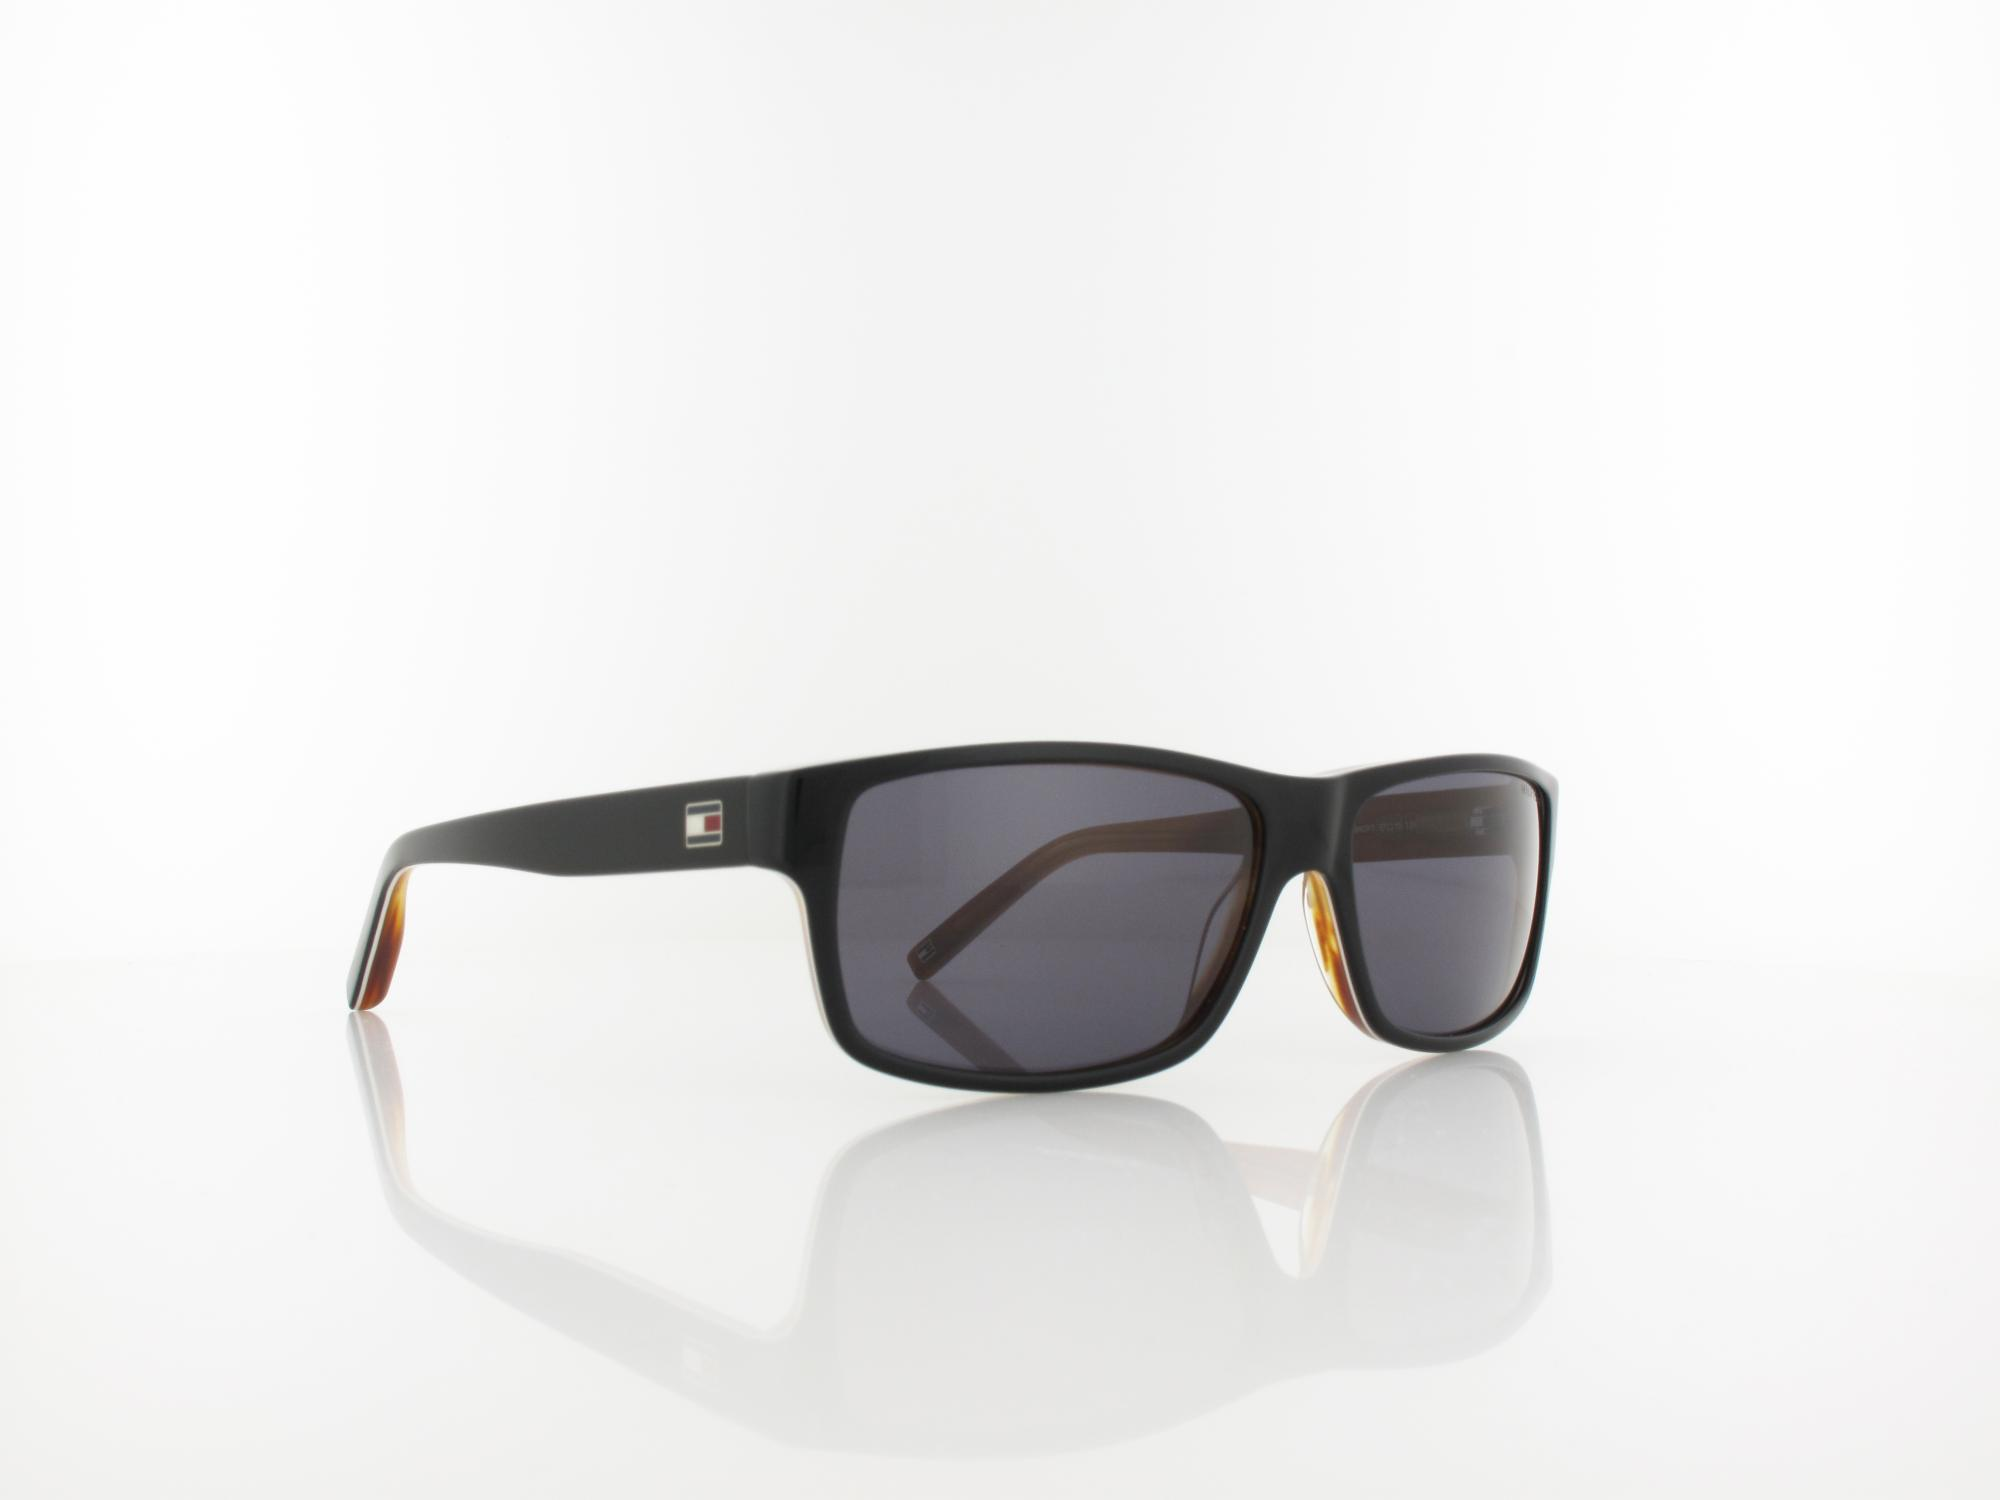 Tommy Hilfiger | TH 1042/N/S UNO Y1 57 | black white horn / grey